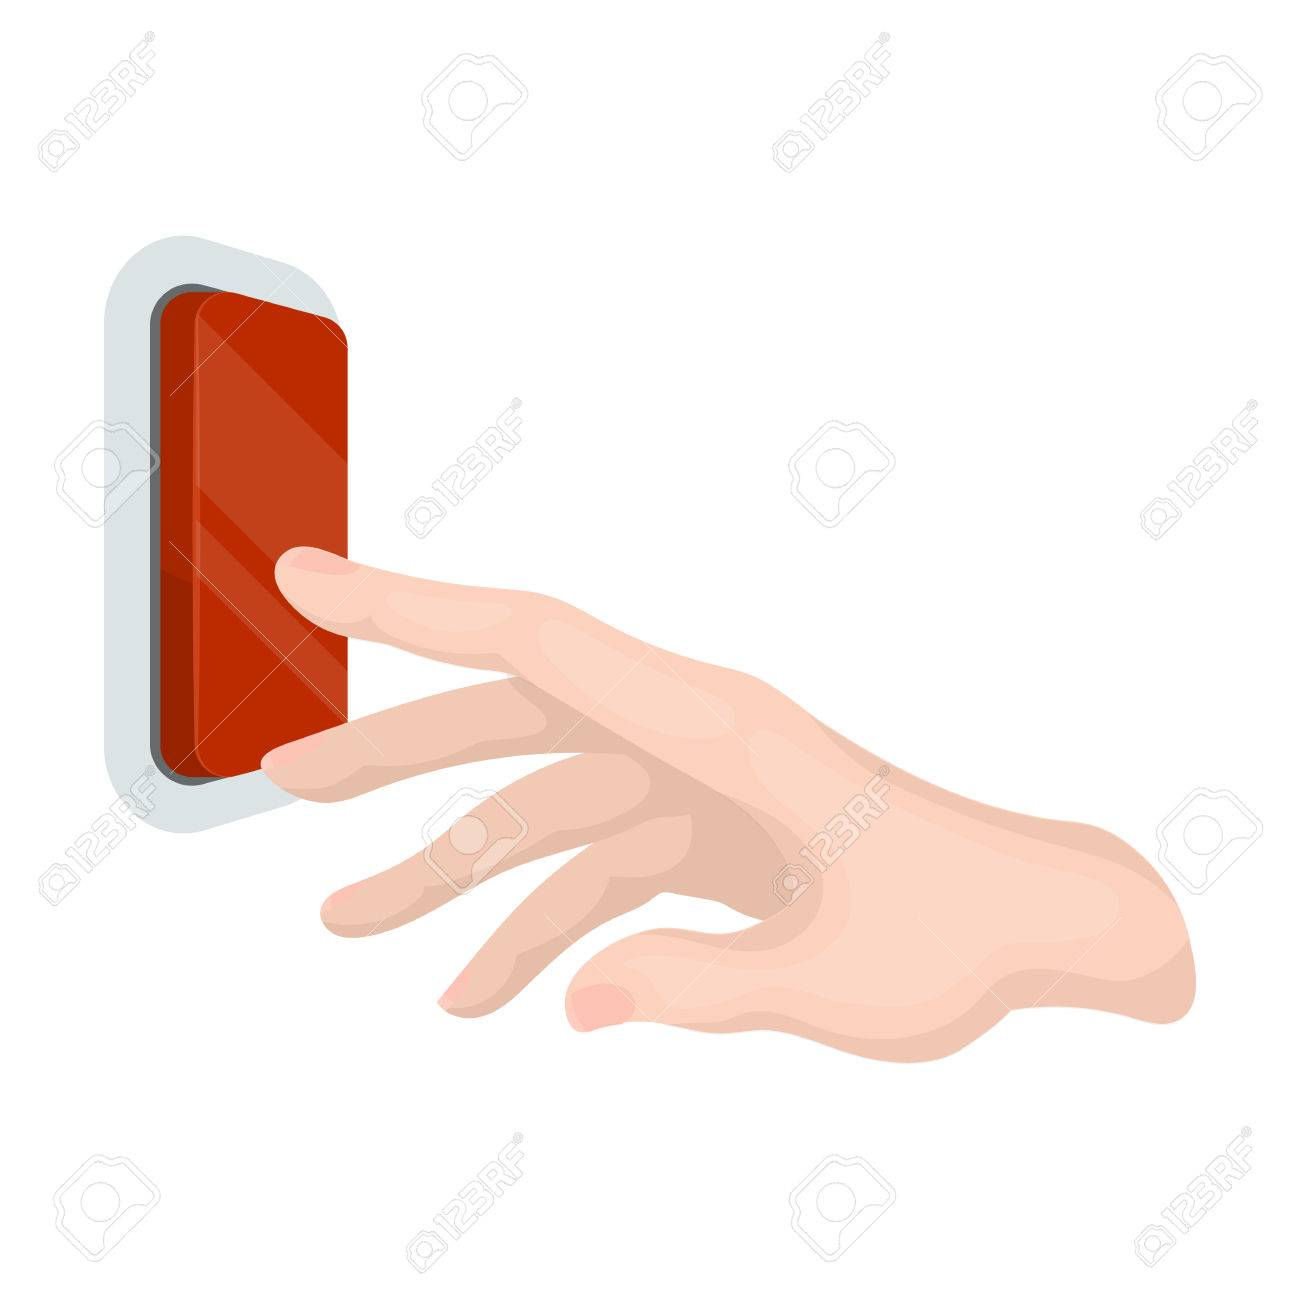 A Hand That Includes An Electric Switch Push Button Switch Single Royalty Free Cliparts Vectors And Stock Illustration Image 82723533